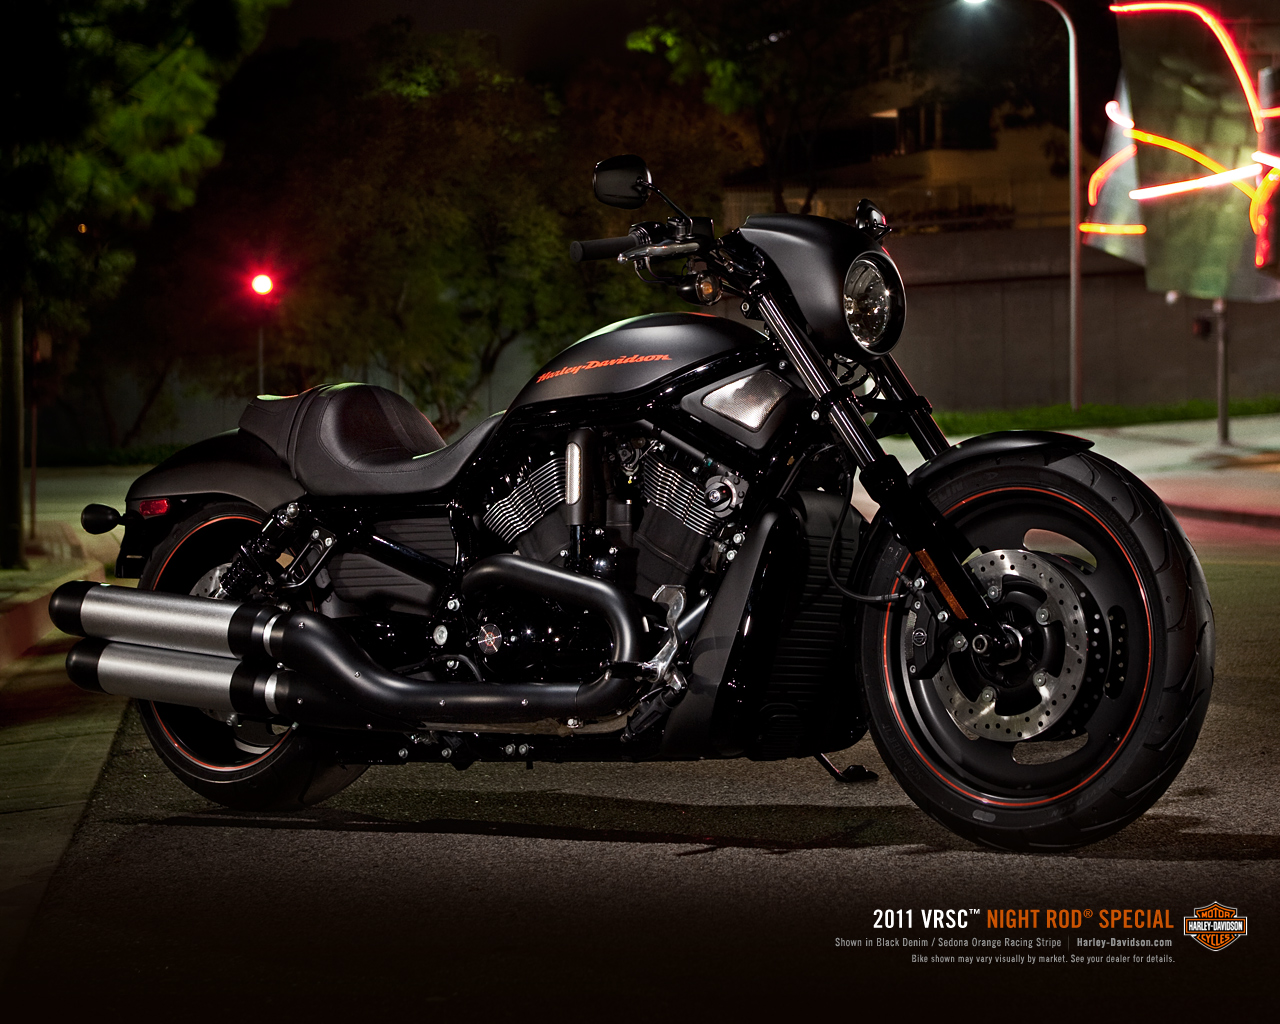 harley davidson night rod wallpaper 1280x1024 15659. Black Bedroom Furniture Sets. Home Design Ideas